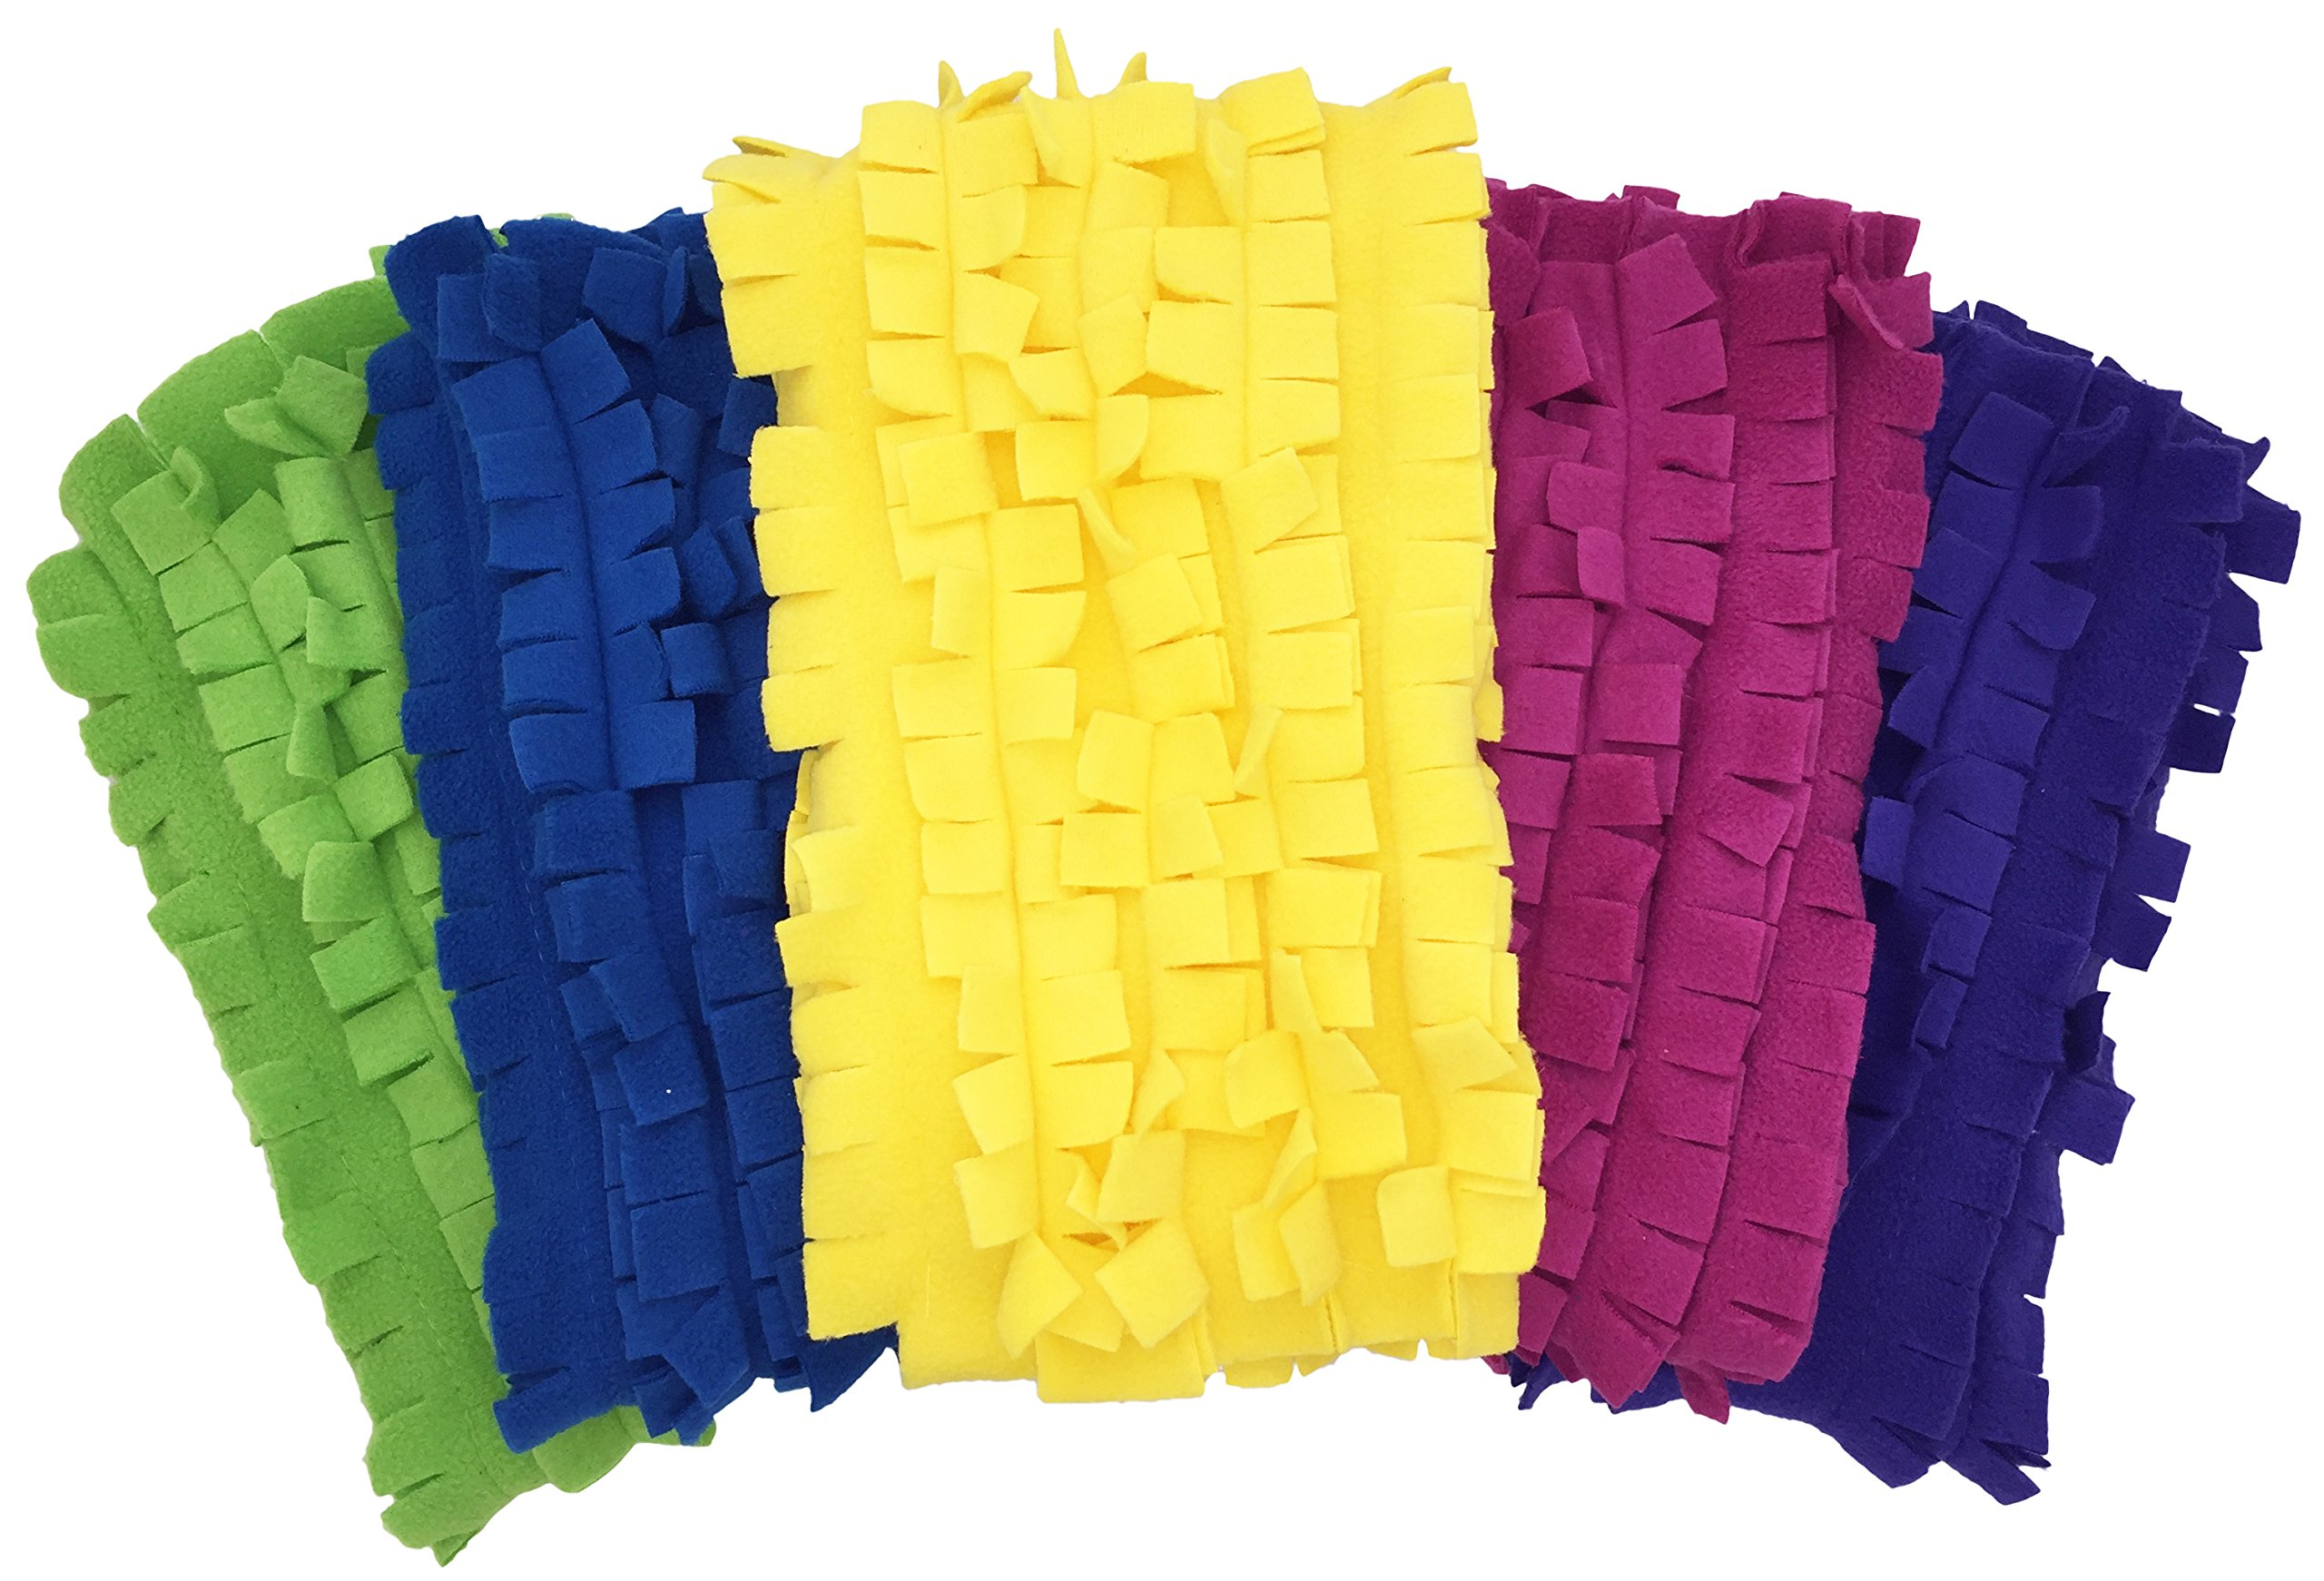 Xanitize Fleece XL Sweeper Mop Refills for Swiffer X-Large - Reusable, Dry Duster, for Hardwoods, Laminates - 5-Pack Rainbow II by Xanitize (Image #1)